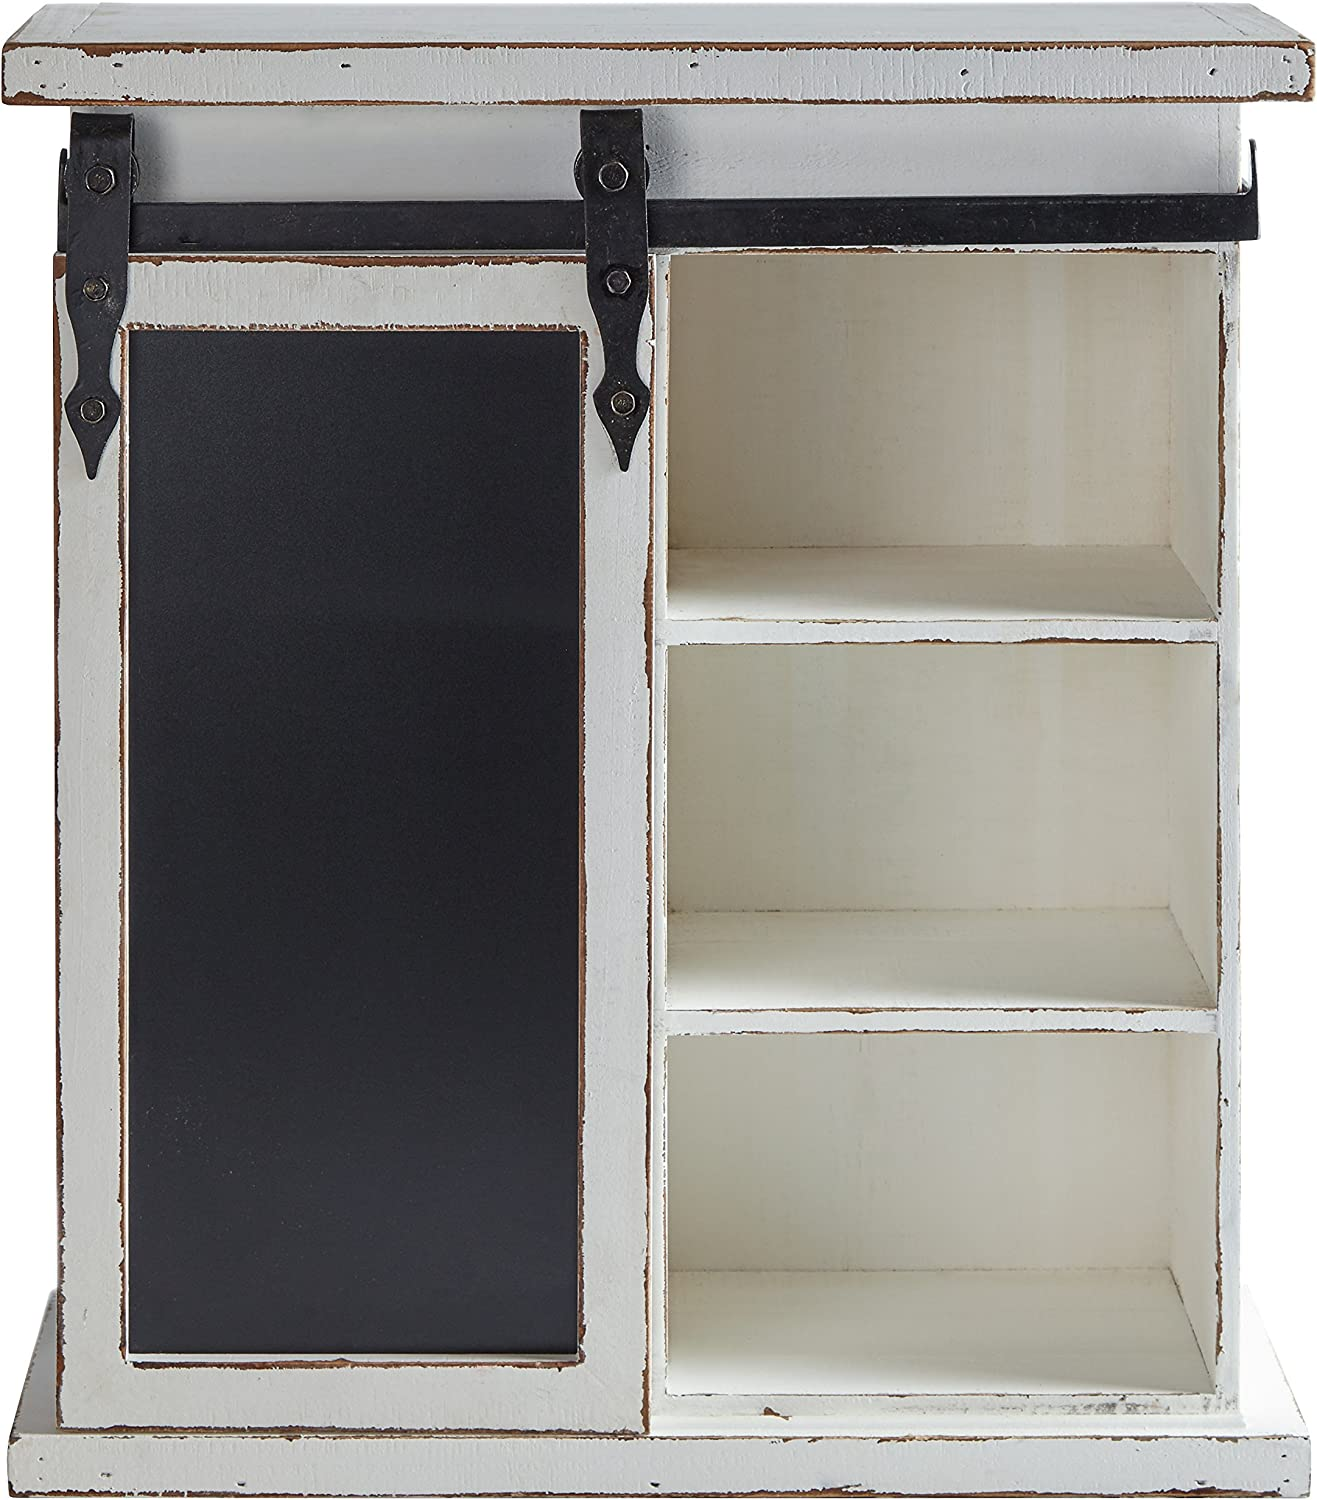 Stone & Beam Vintage Wood Cabinet with Chalkboard, 23.8 H, Antique White